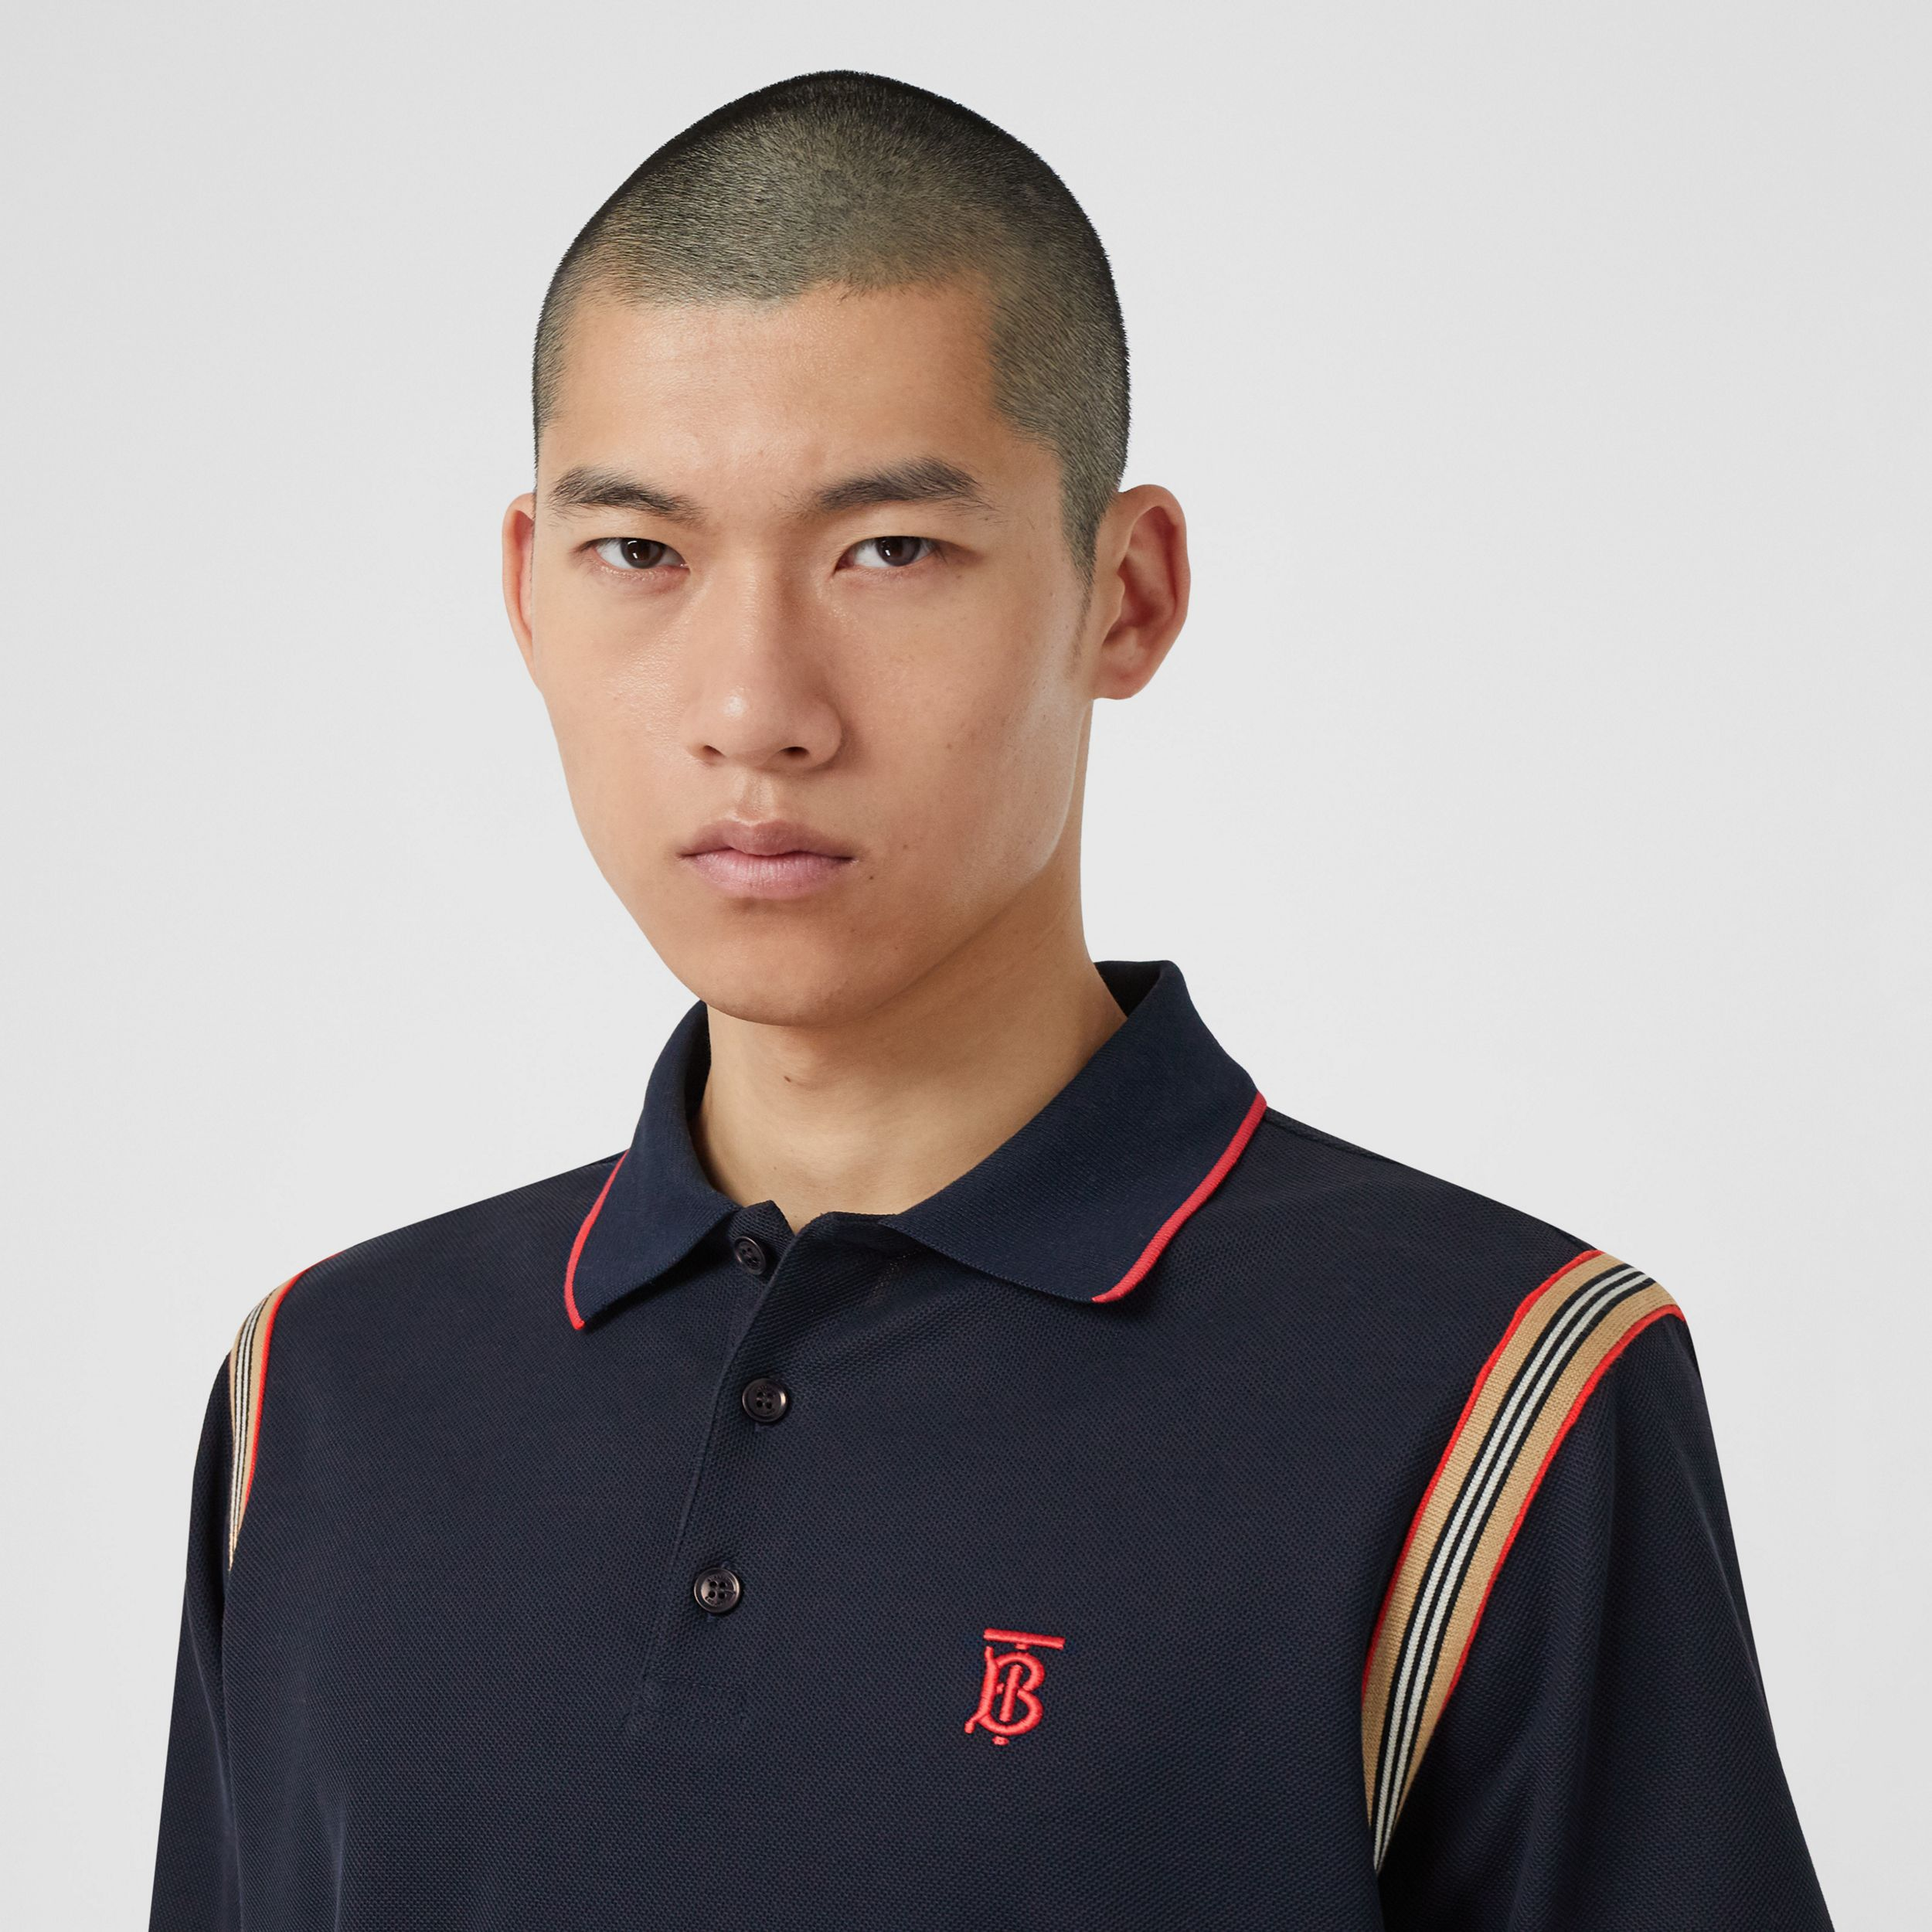 Icon Stripe Trim Monogram Motif Cotton Polo Shirt in Navy - Men | Burberry Hong Kong S.A.R. - 2